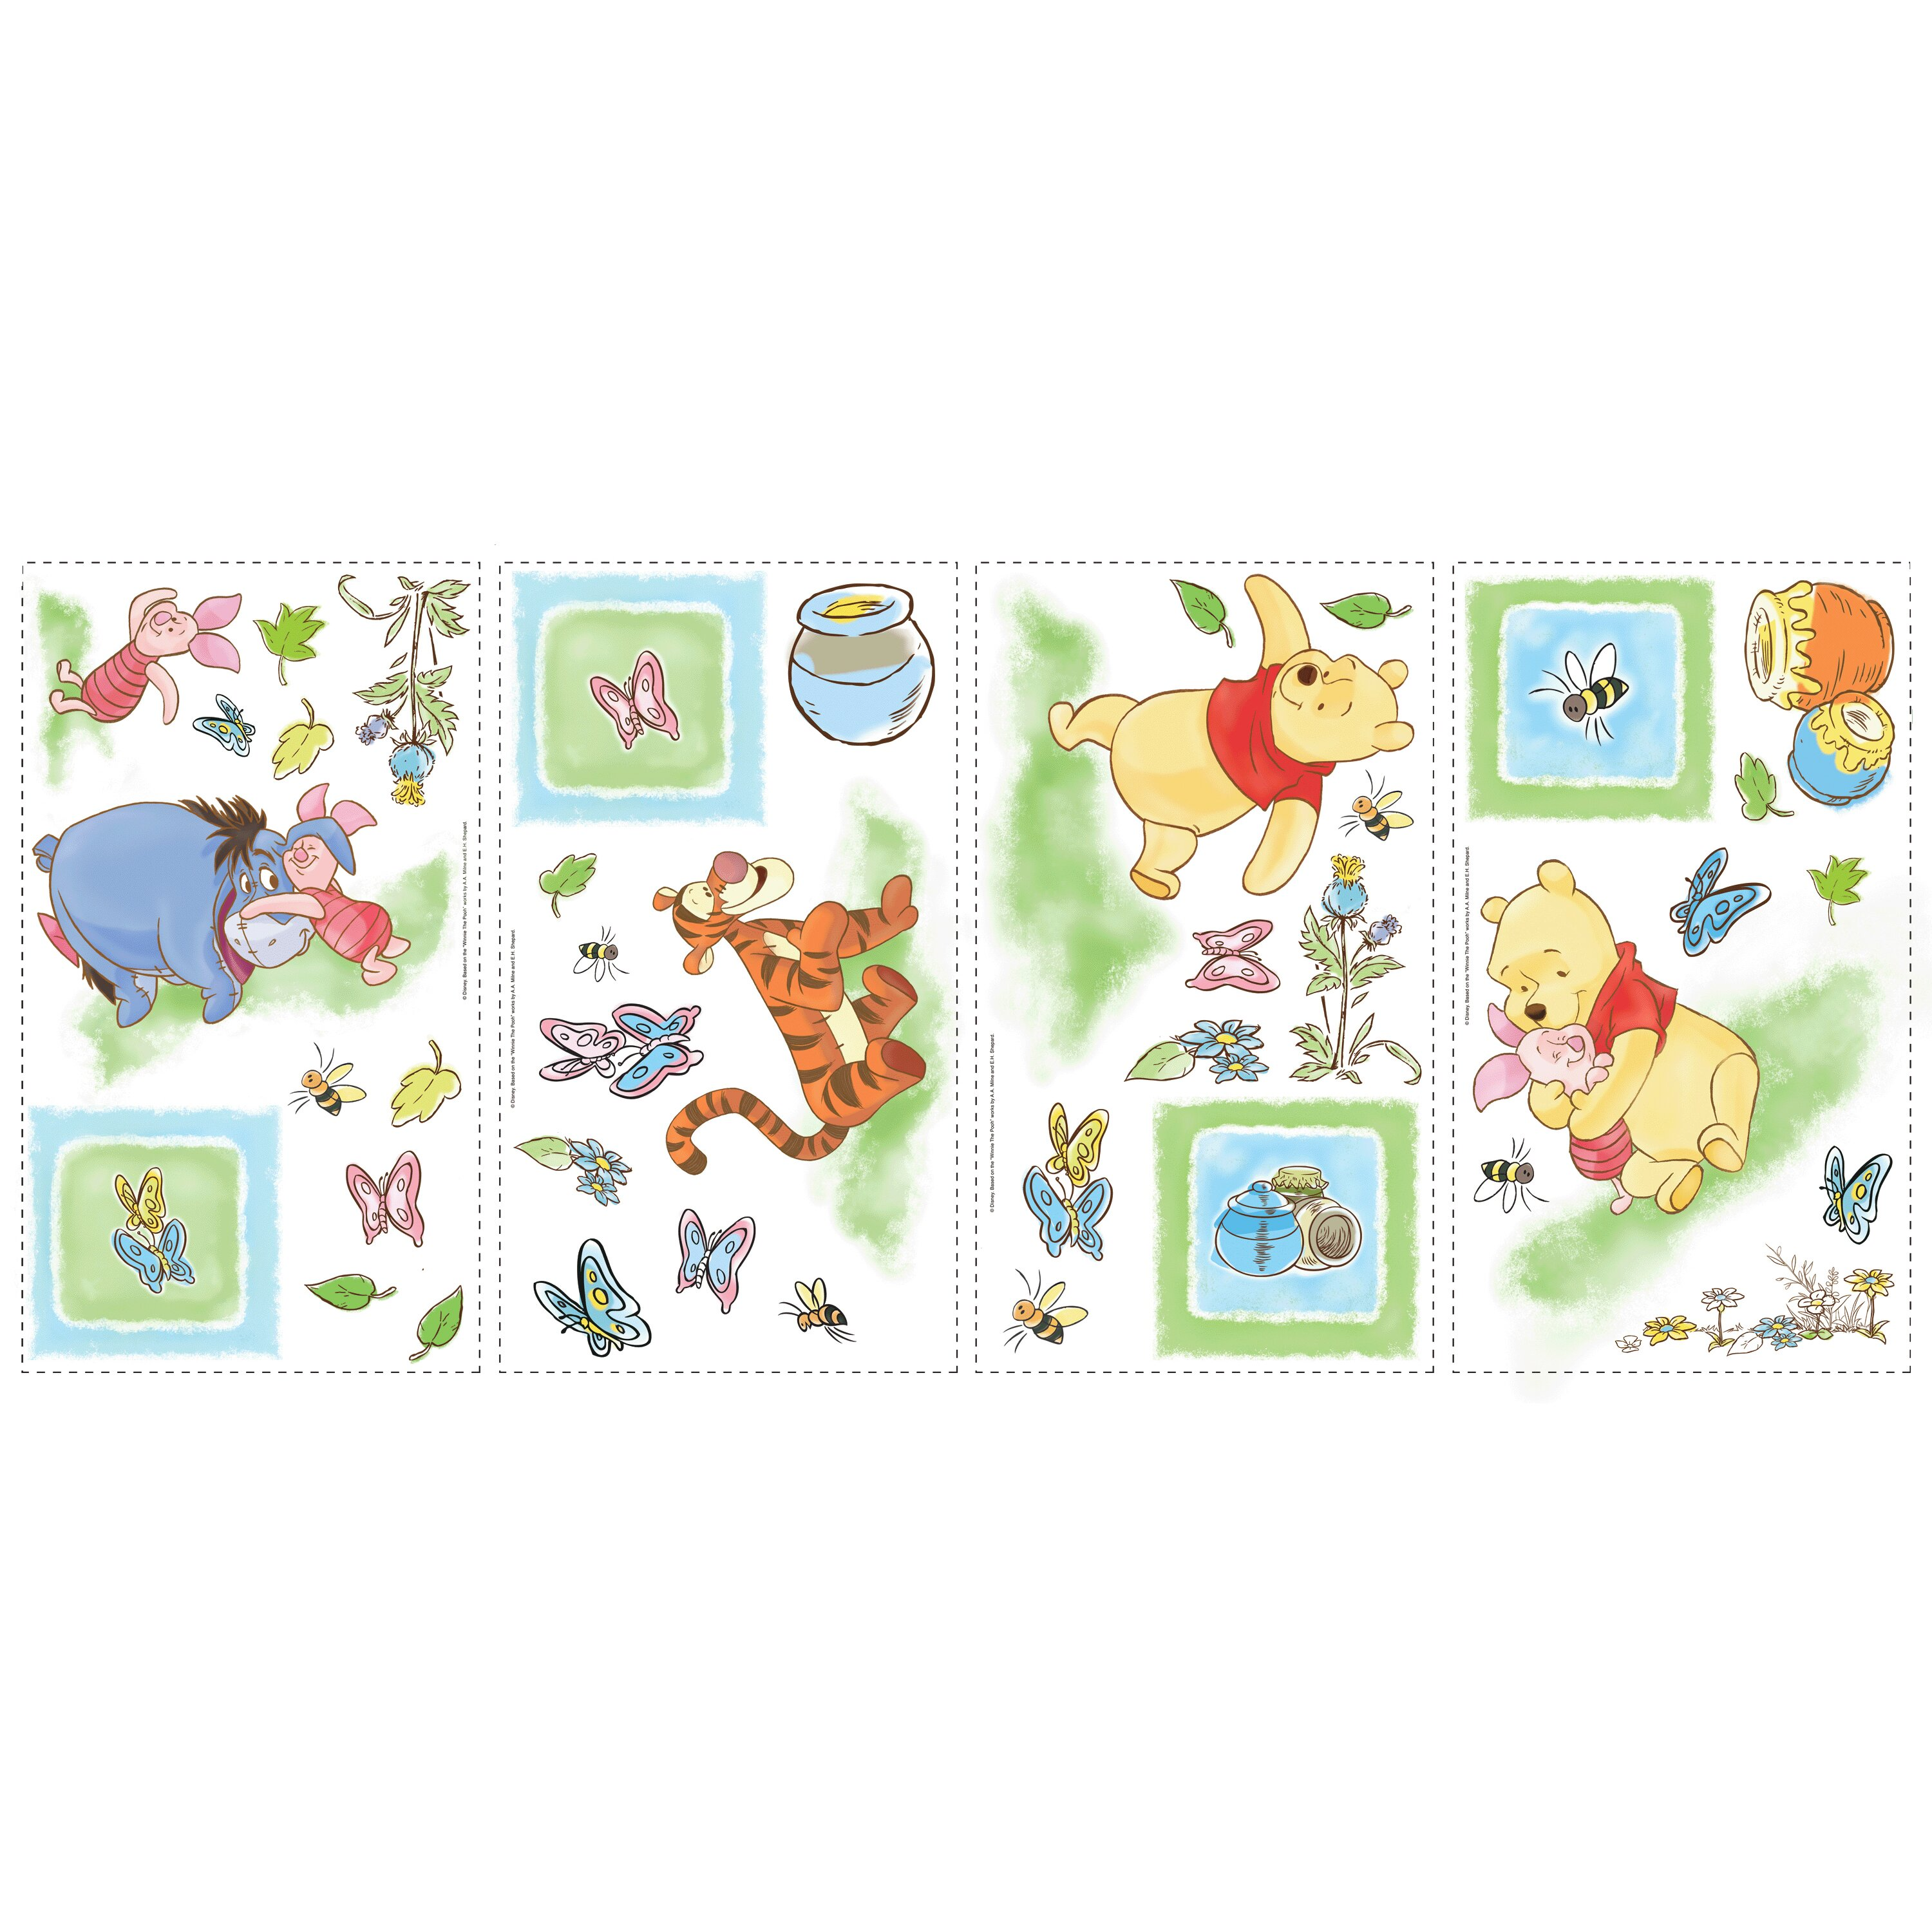 Winnie the pooh toddler bedding - Room Mates Deco Winnie The Pooh Toddler Wall Decal